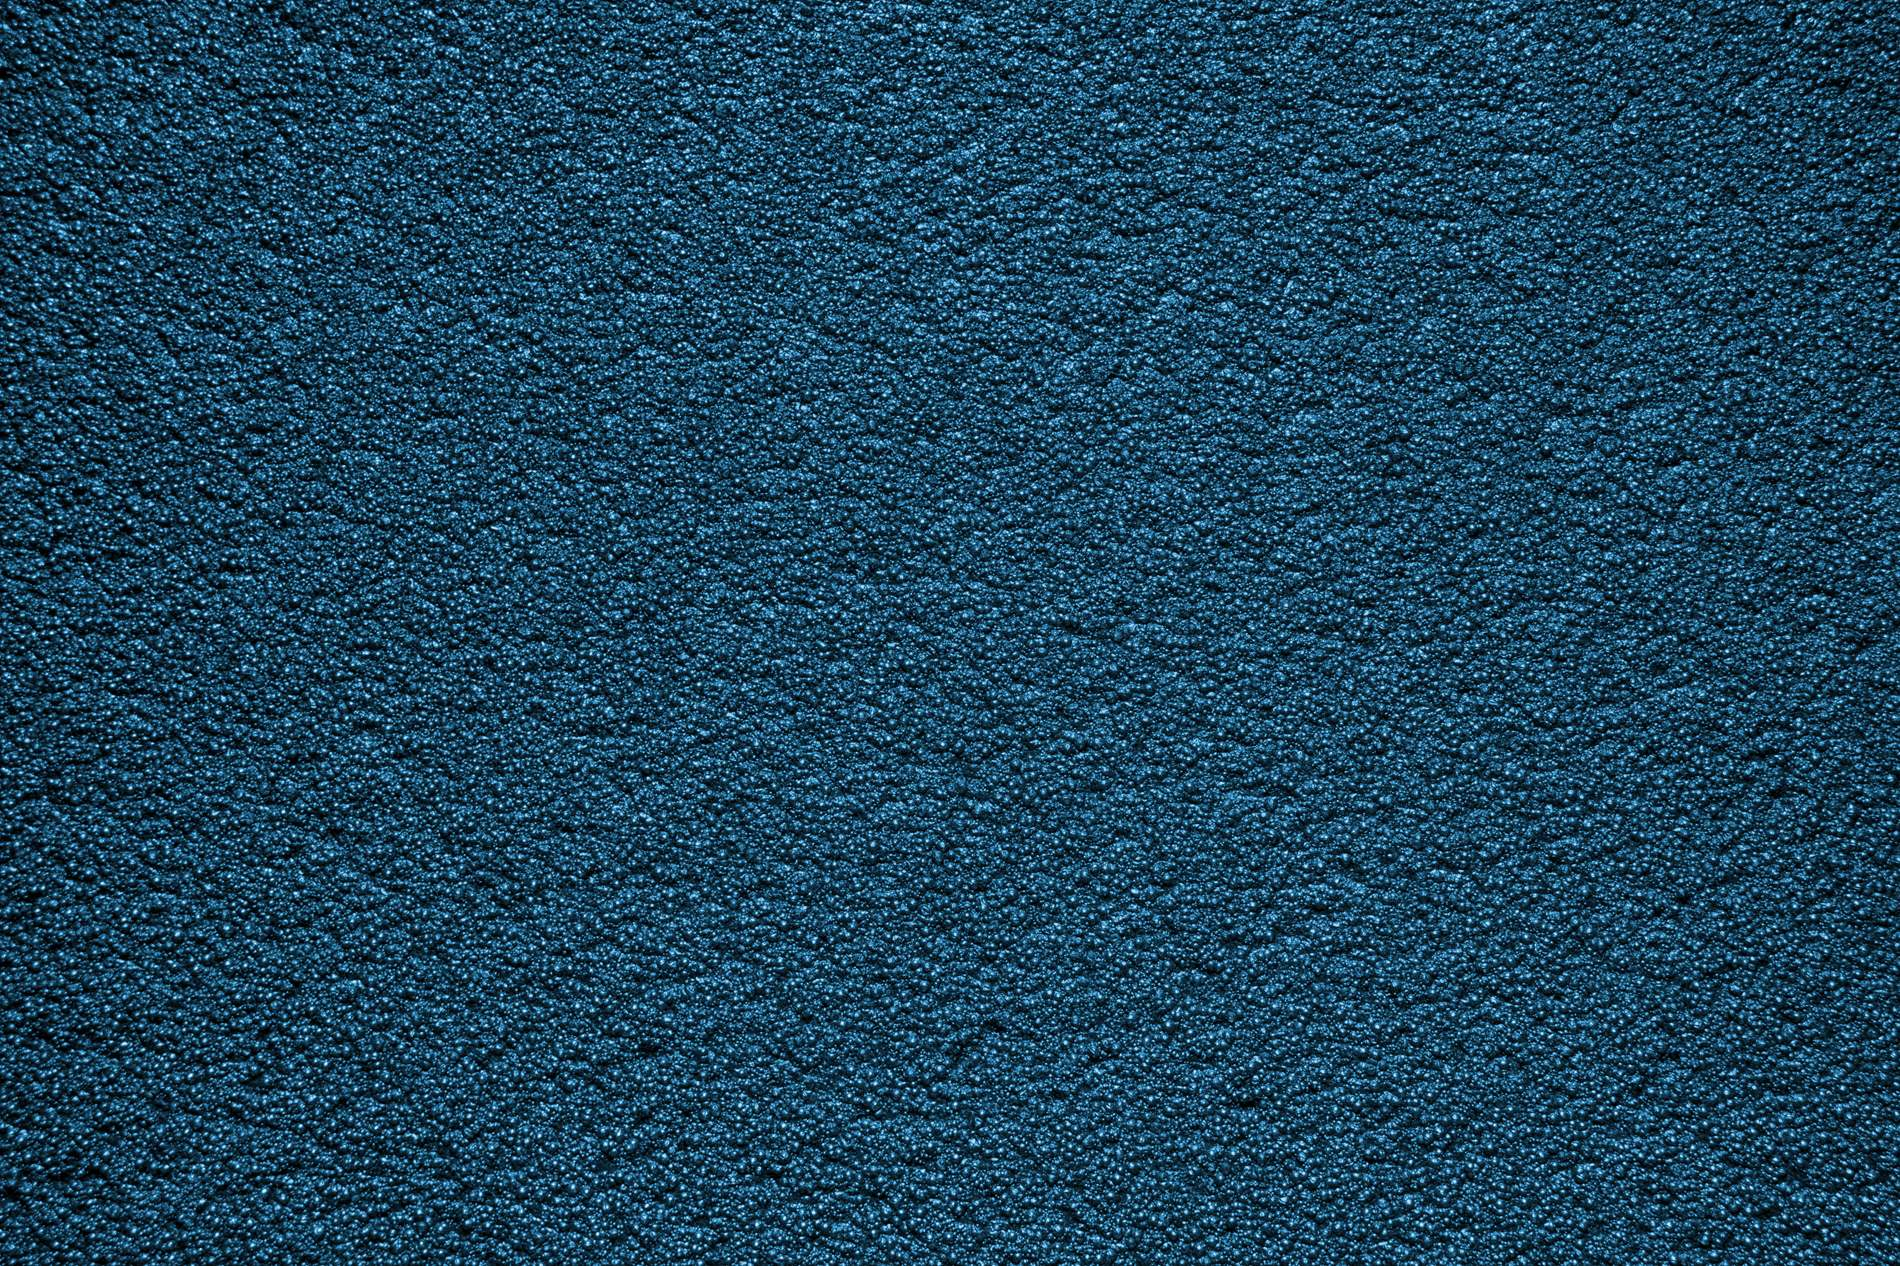 Wall texture background blue collection 13 wallpapers for Blue wallpaper for walls